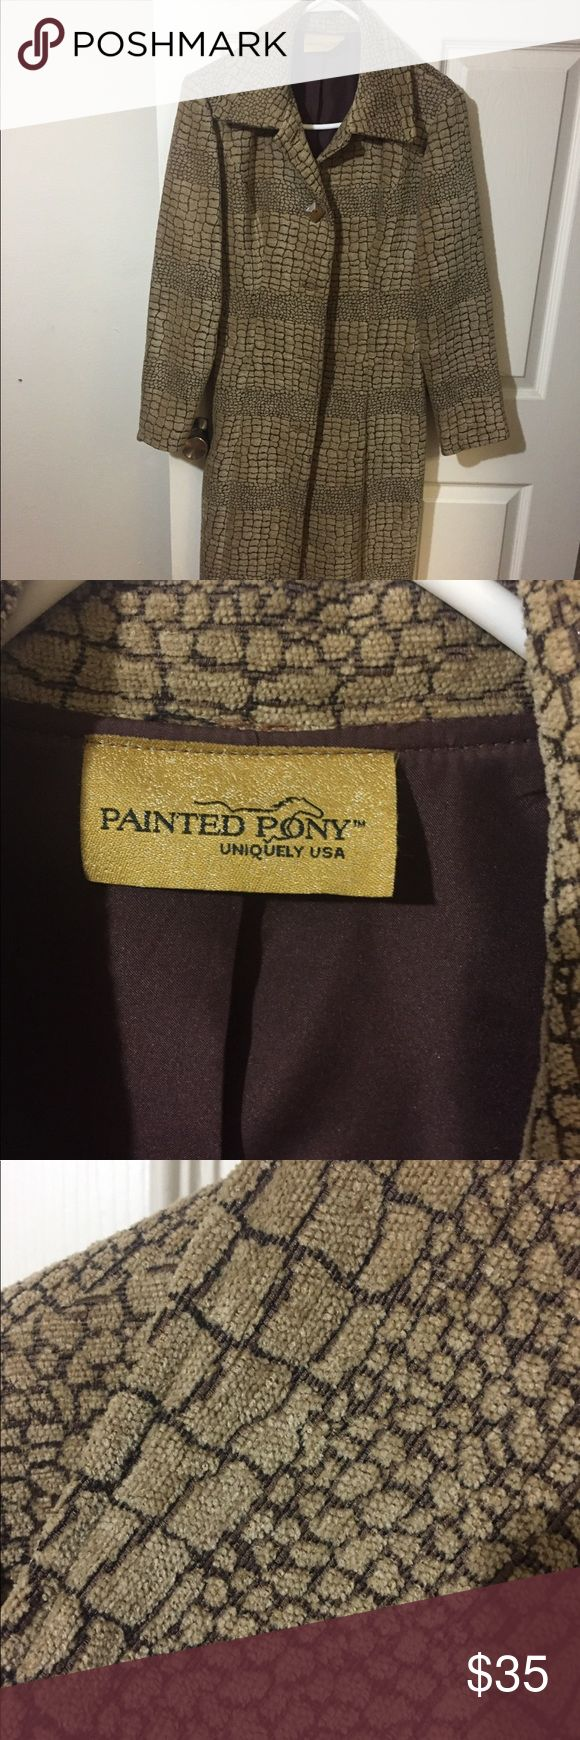 Painted Pony Knee Length Tapestry Jacket Long tapestry coat from Painted Pony. Tan and brown with brown square buttons. Bought at a sample sale so no size label in it. It is a 10 though. Shoulder to shoulder is 19 inches. Shoulder to bottom is 42 inches. Super cute with jeans and brown boots!  Doesn't fit me anymore. Worn 4 times. painted pony Jackets & Coats Trench Coats